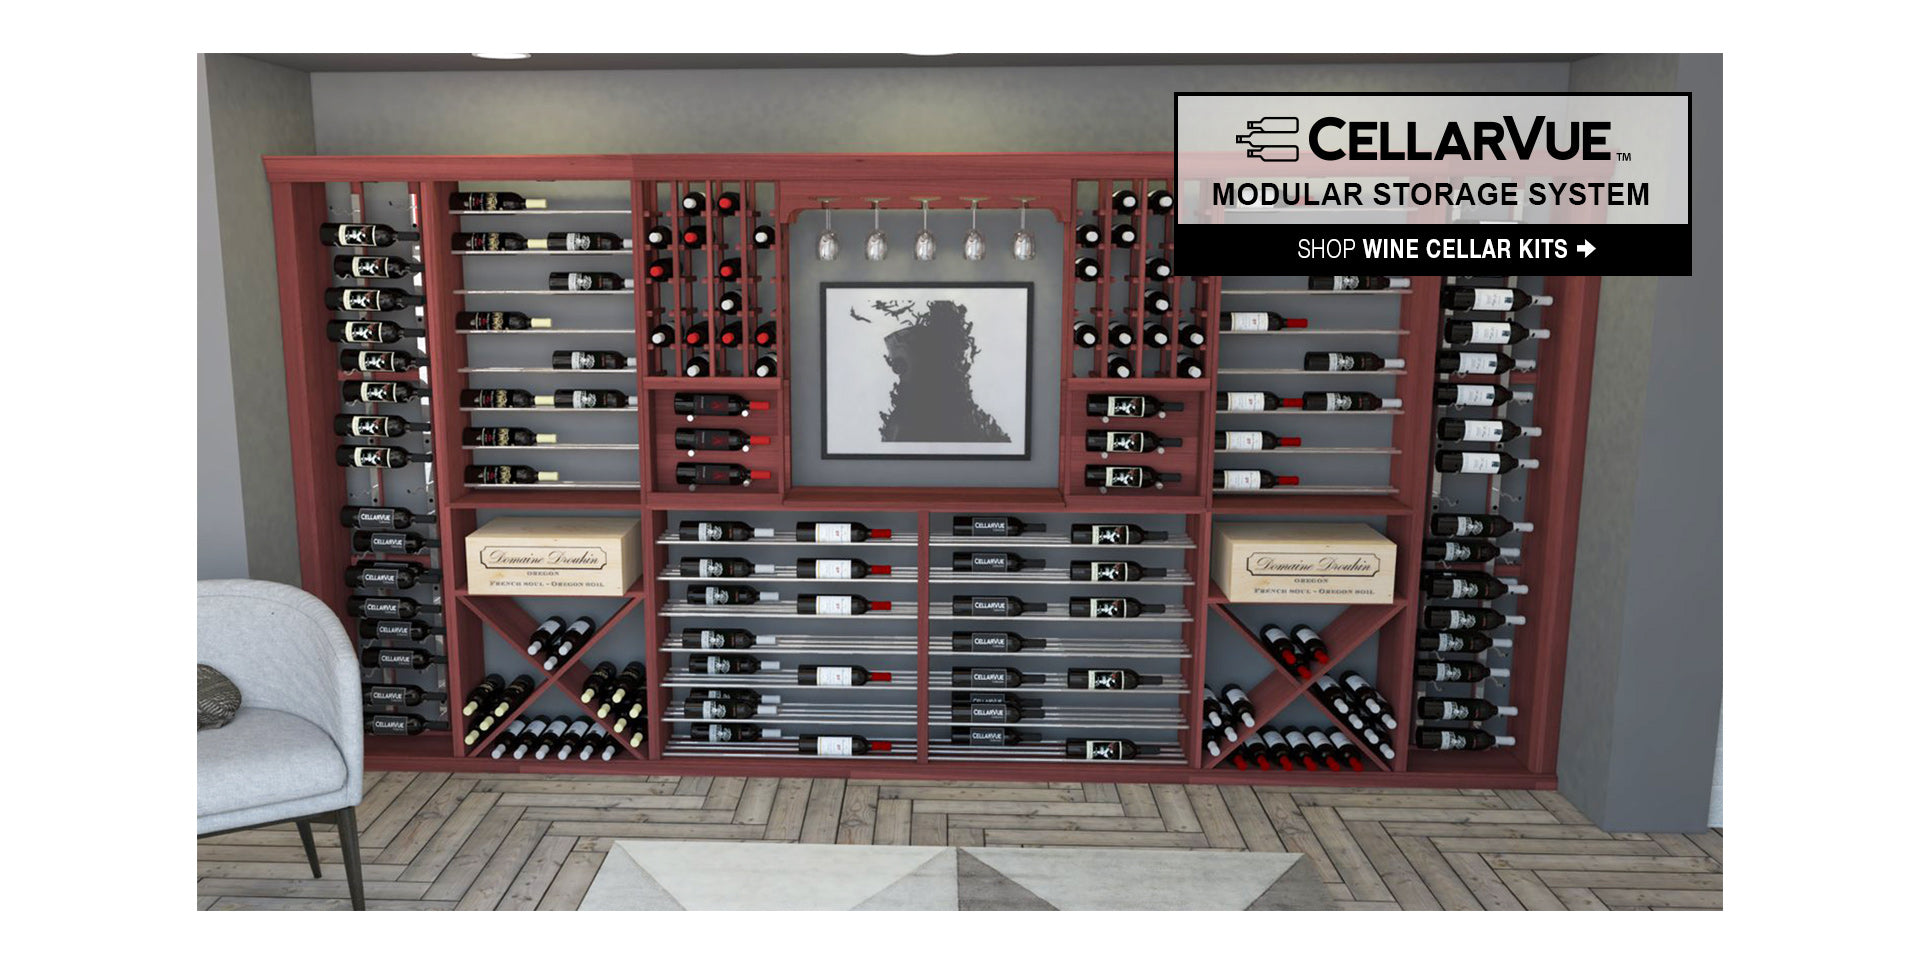 Shop Wine Cellar Kits